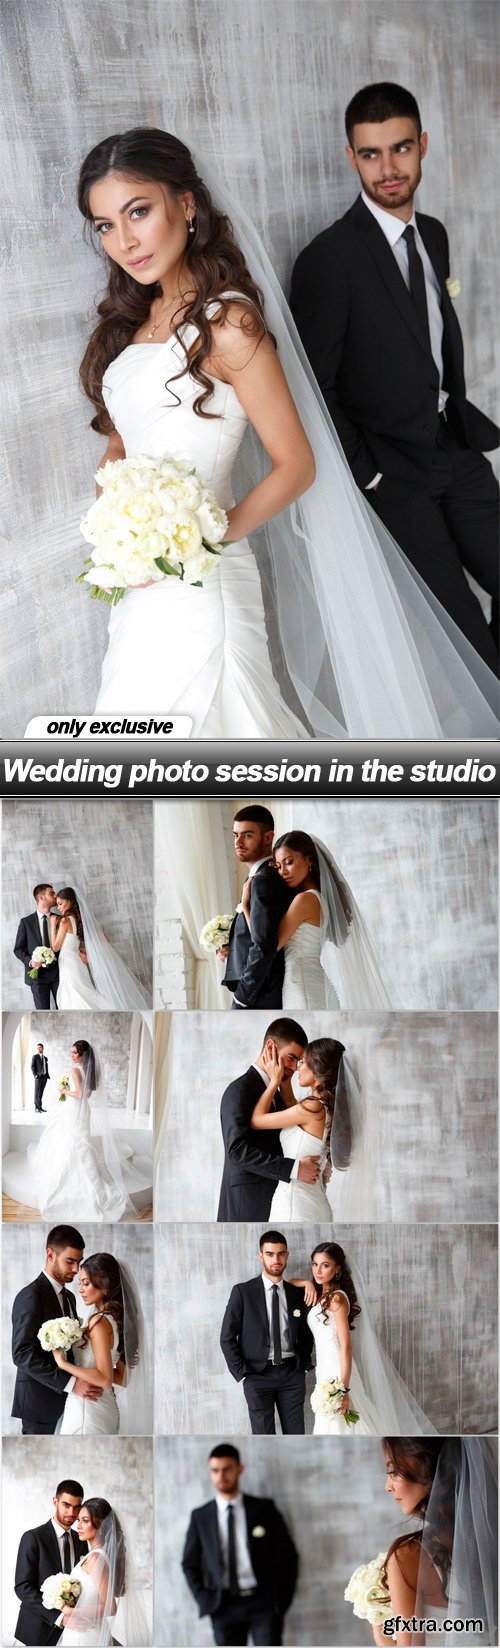 Wedding photo session in the studio - 9 UHQ JPEG